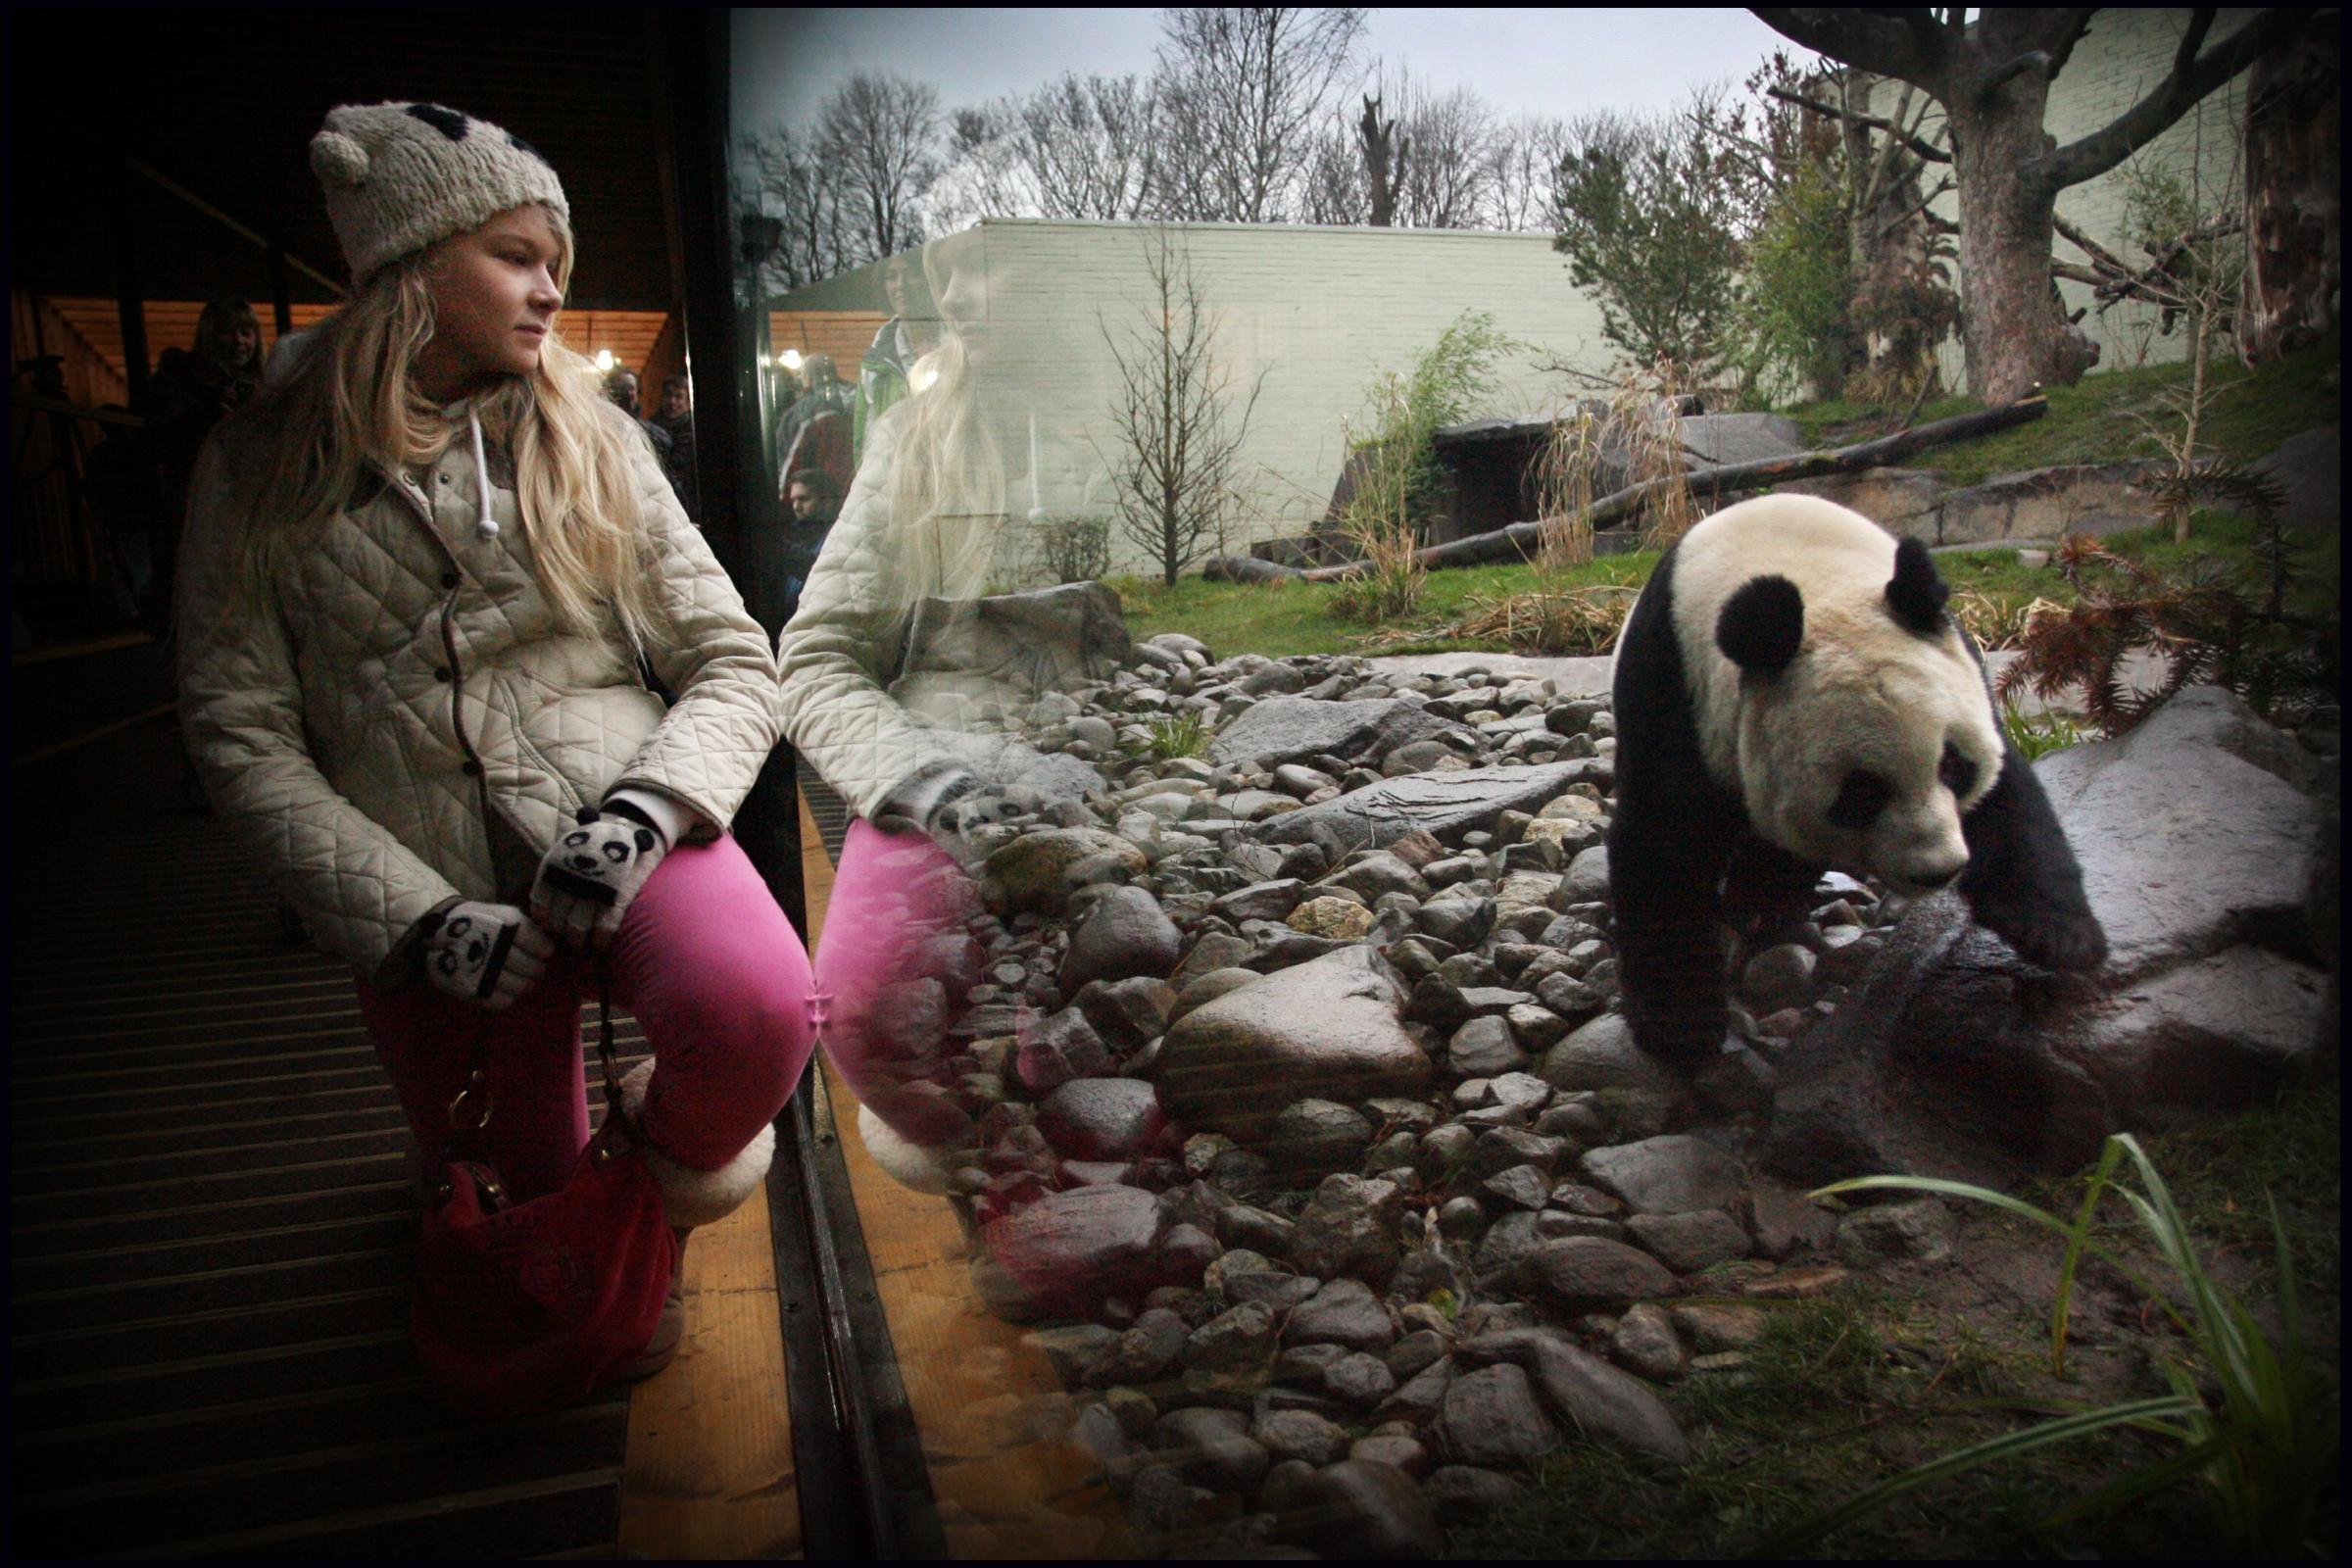 Eve Miller, from Bridge of Allan, watches Tian Tian, who it's feared will react badly should construction work be noisy. Picture: Stewart Attwood